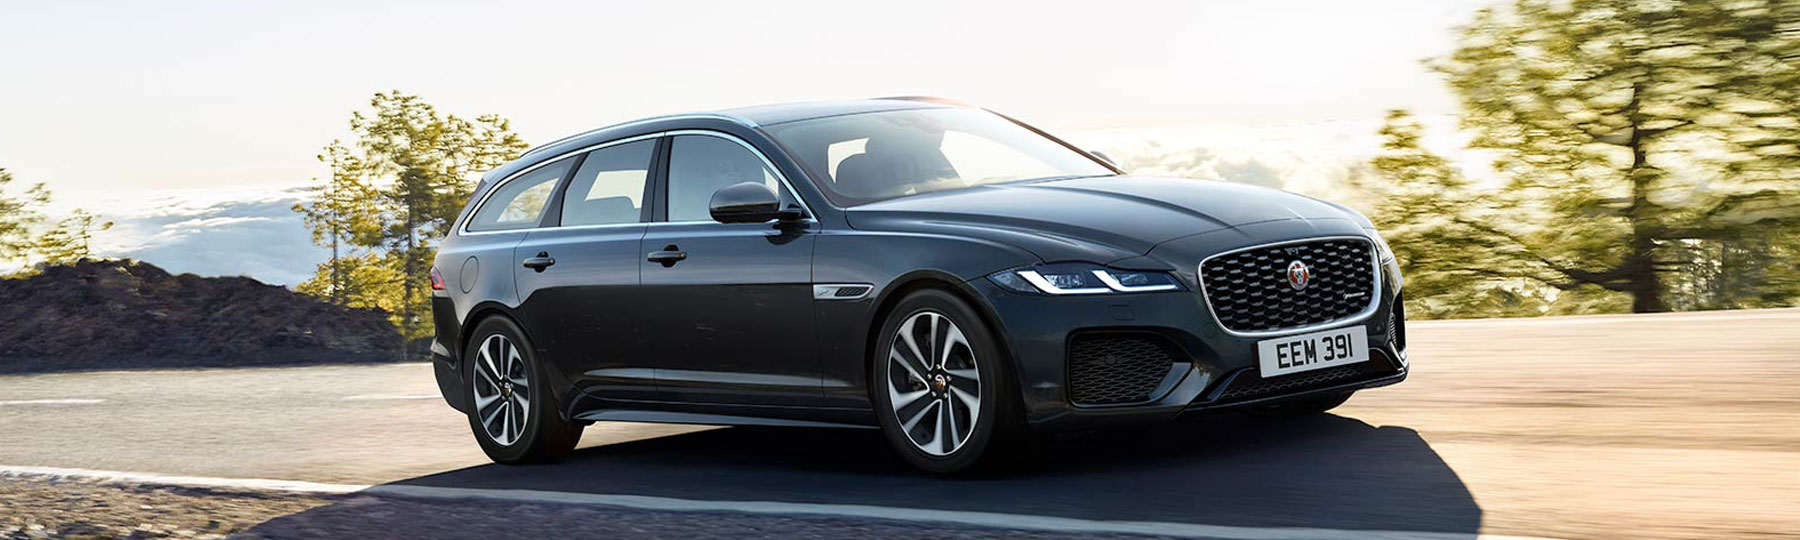 New Jaguar XF Sportbrake New Car Offer